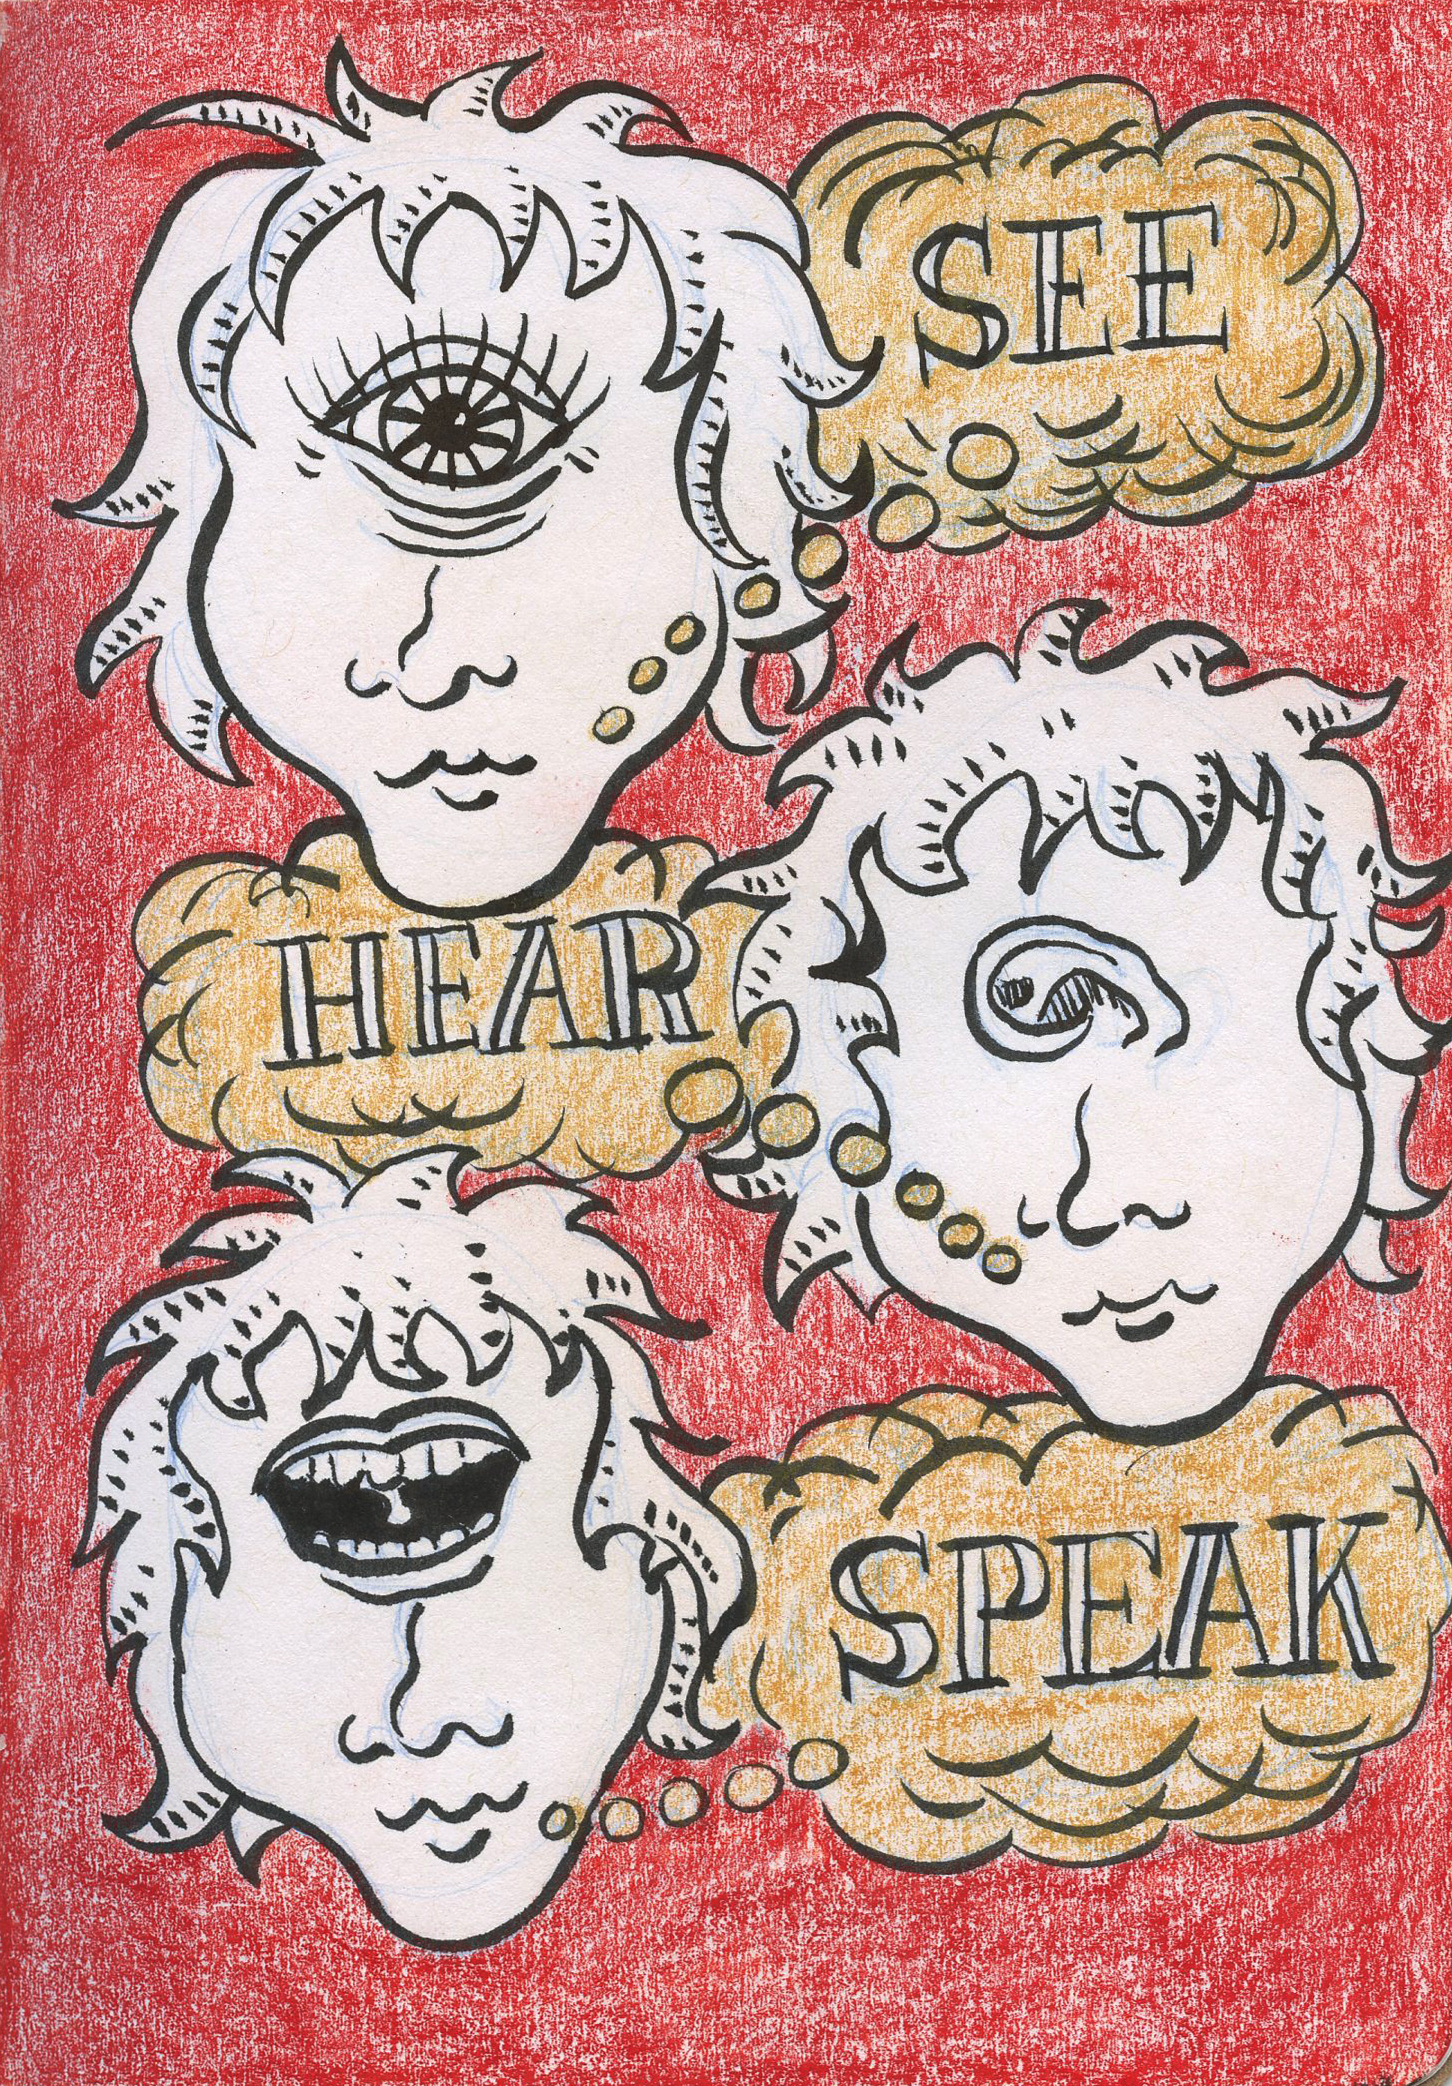 day_26_see_hear_speak.jpg